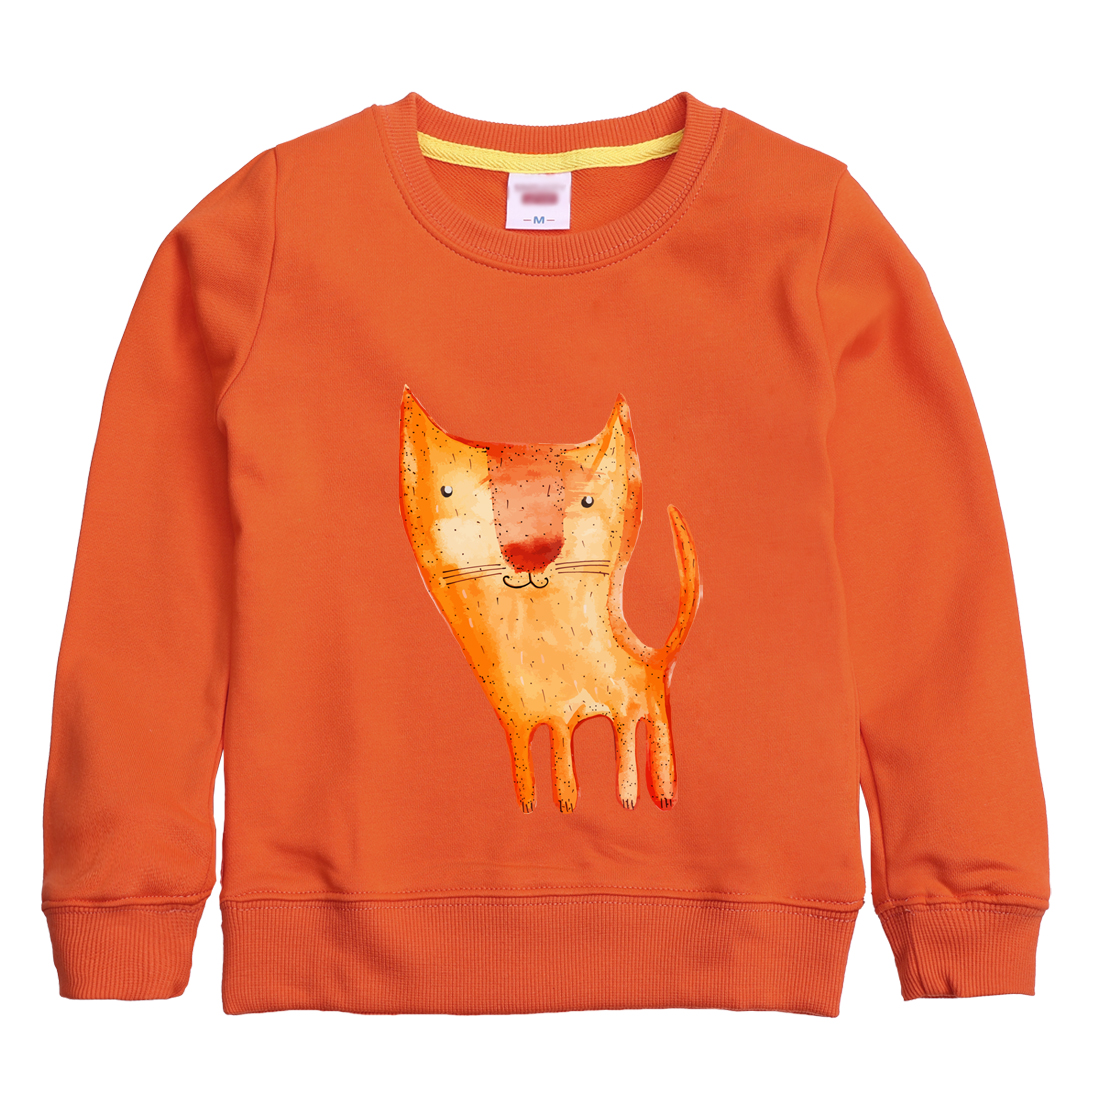 2018 New fashion FOX pattern printed winter autumn sweatshirt design for children hoodie clothing with 8 colors for kid choose